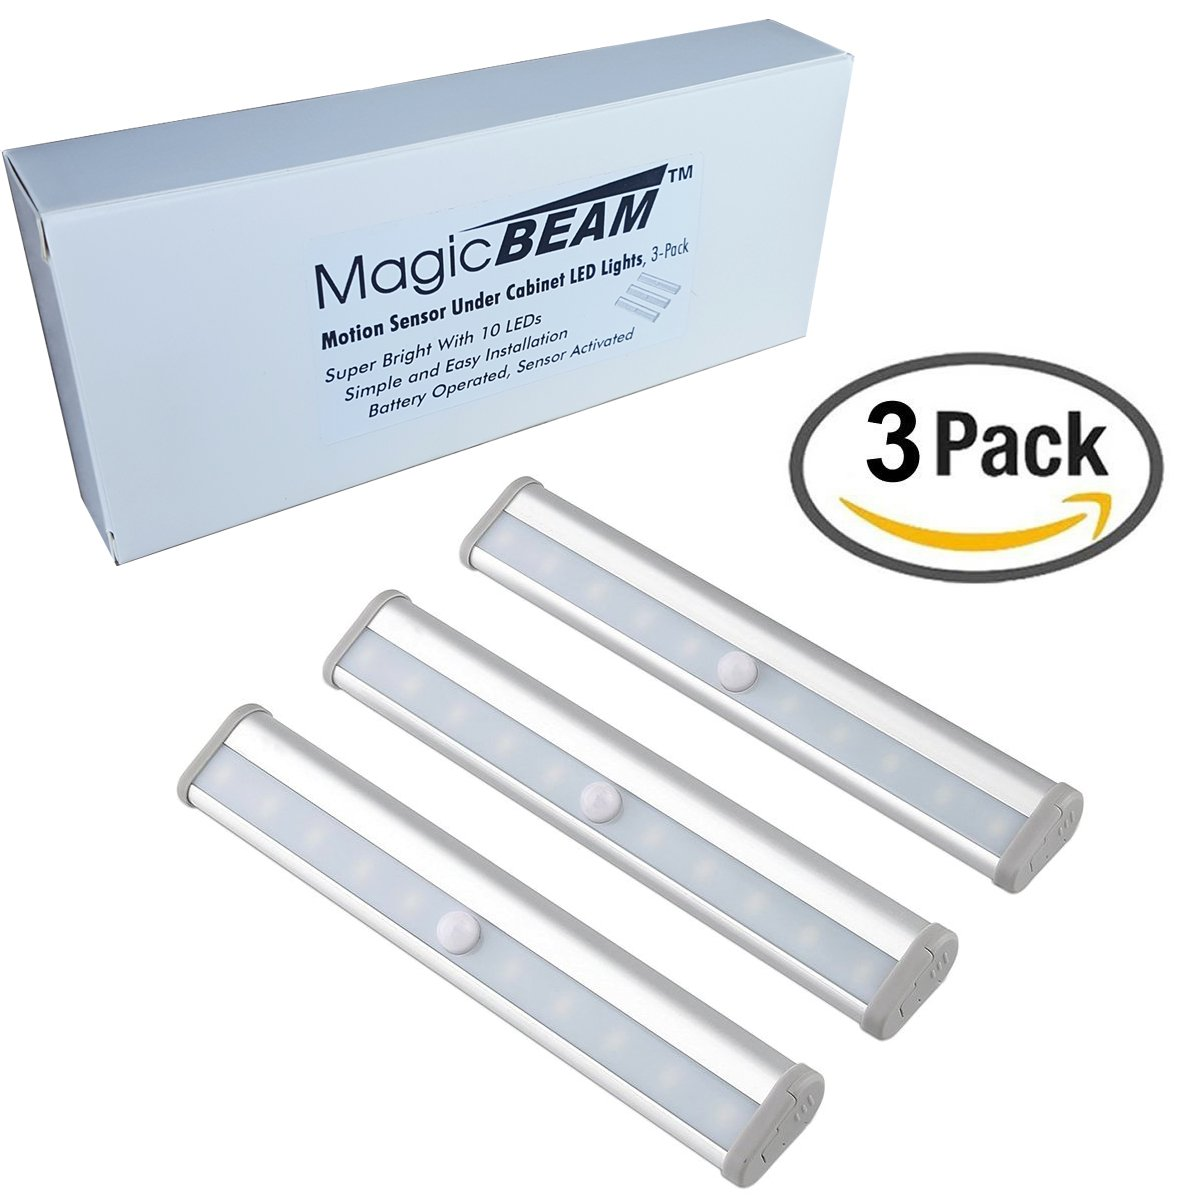 Magic BEAM Under Cabinet LED Light with Sensor, Daylight White Wireless Motion Sensor LED Light Bar, Stick On Anywhere, 10 LED Under Cabinet Lighting - 3 Pack